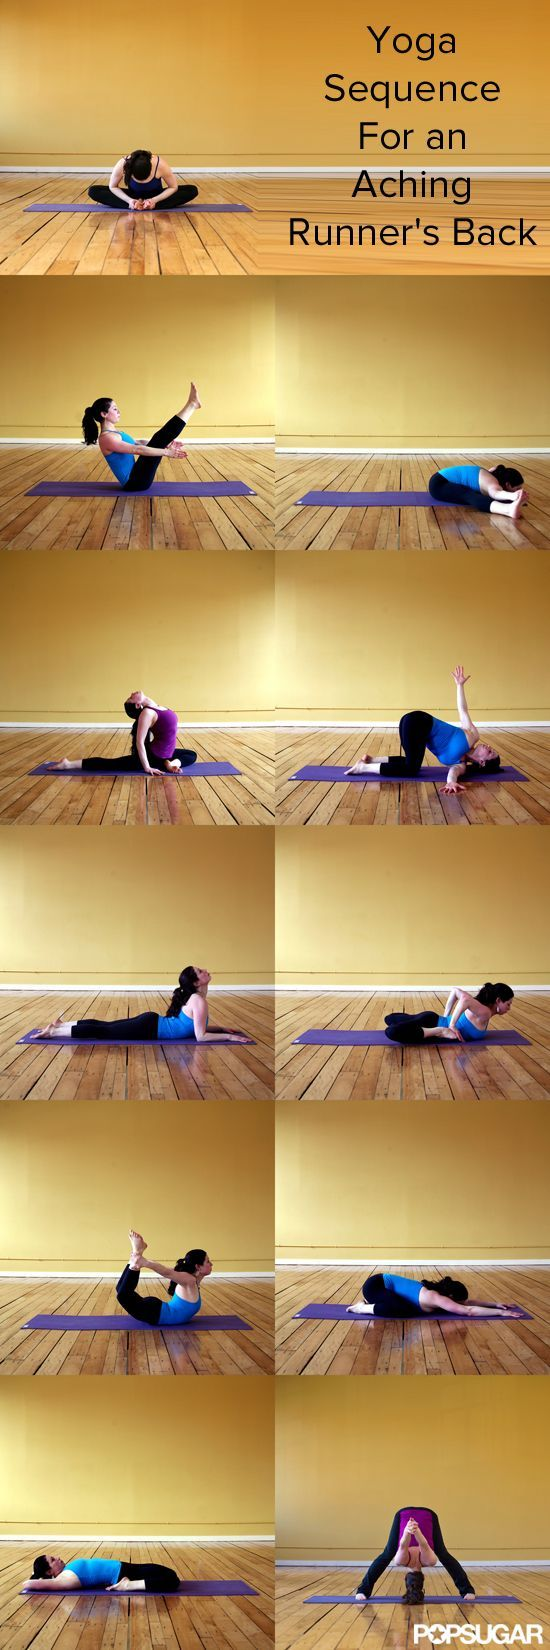 yoga for an aching back--need!